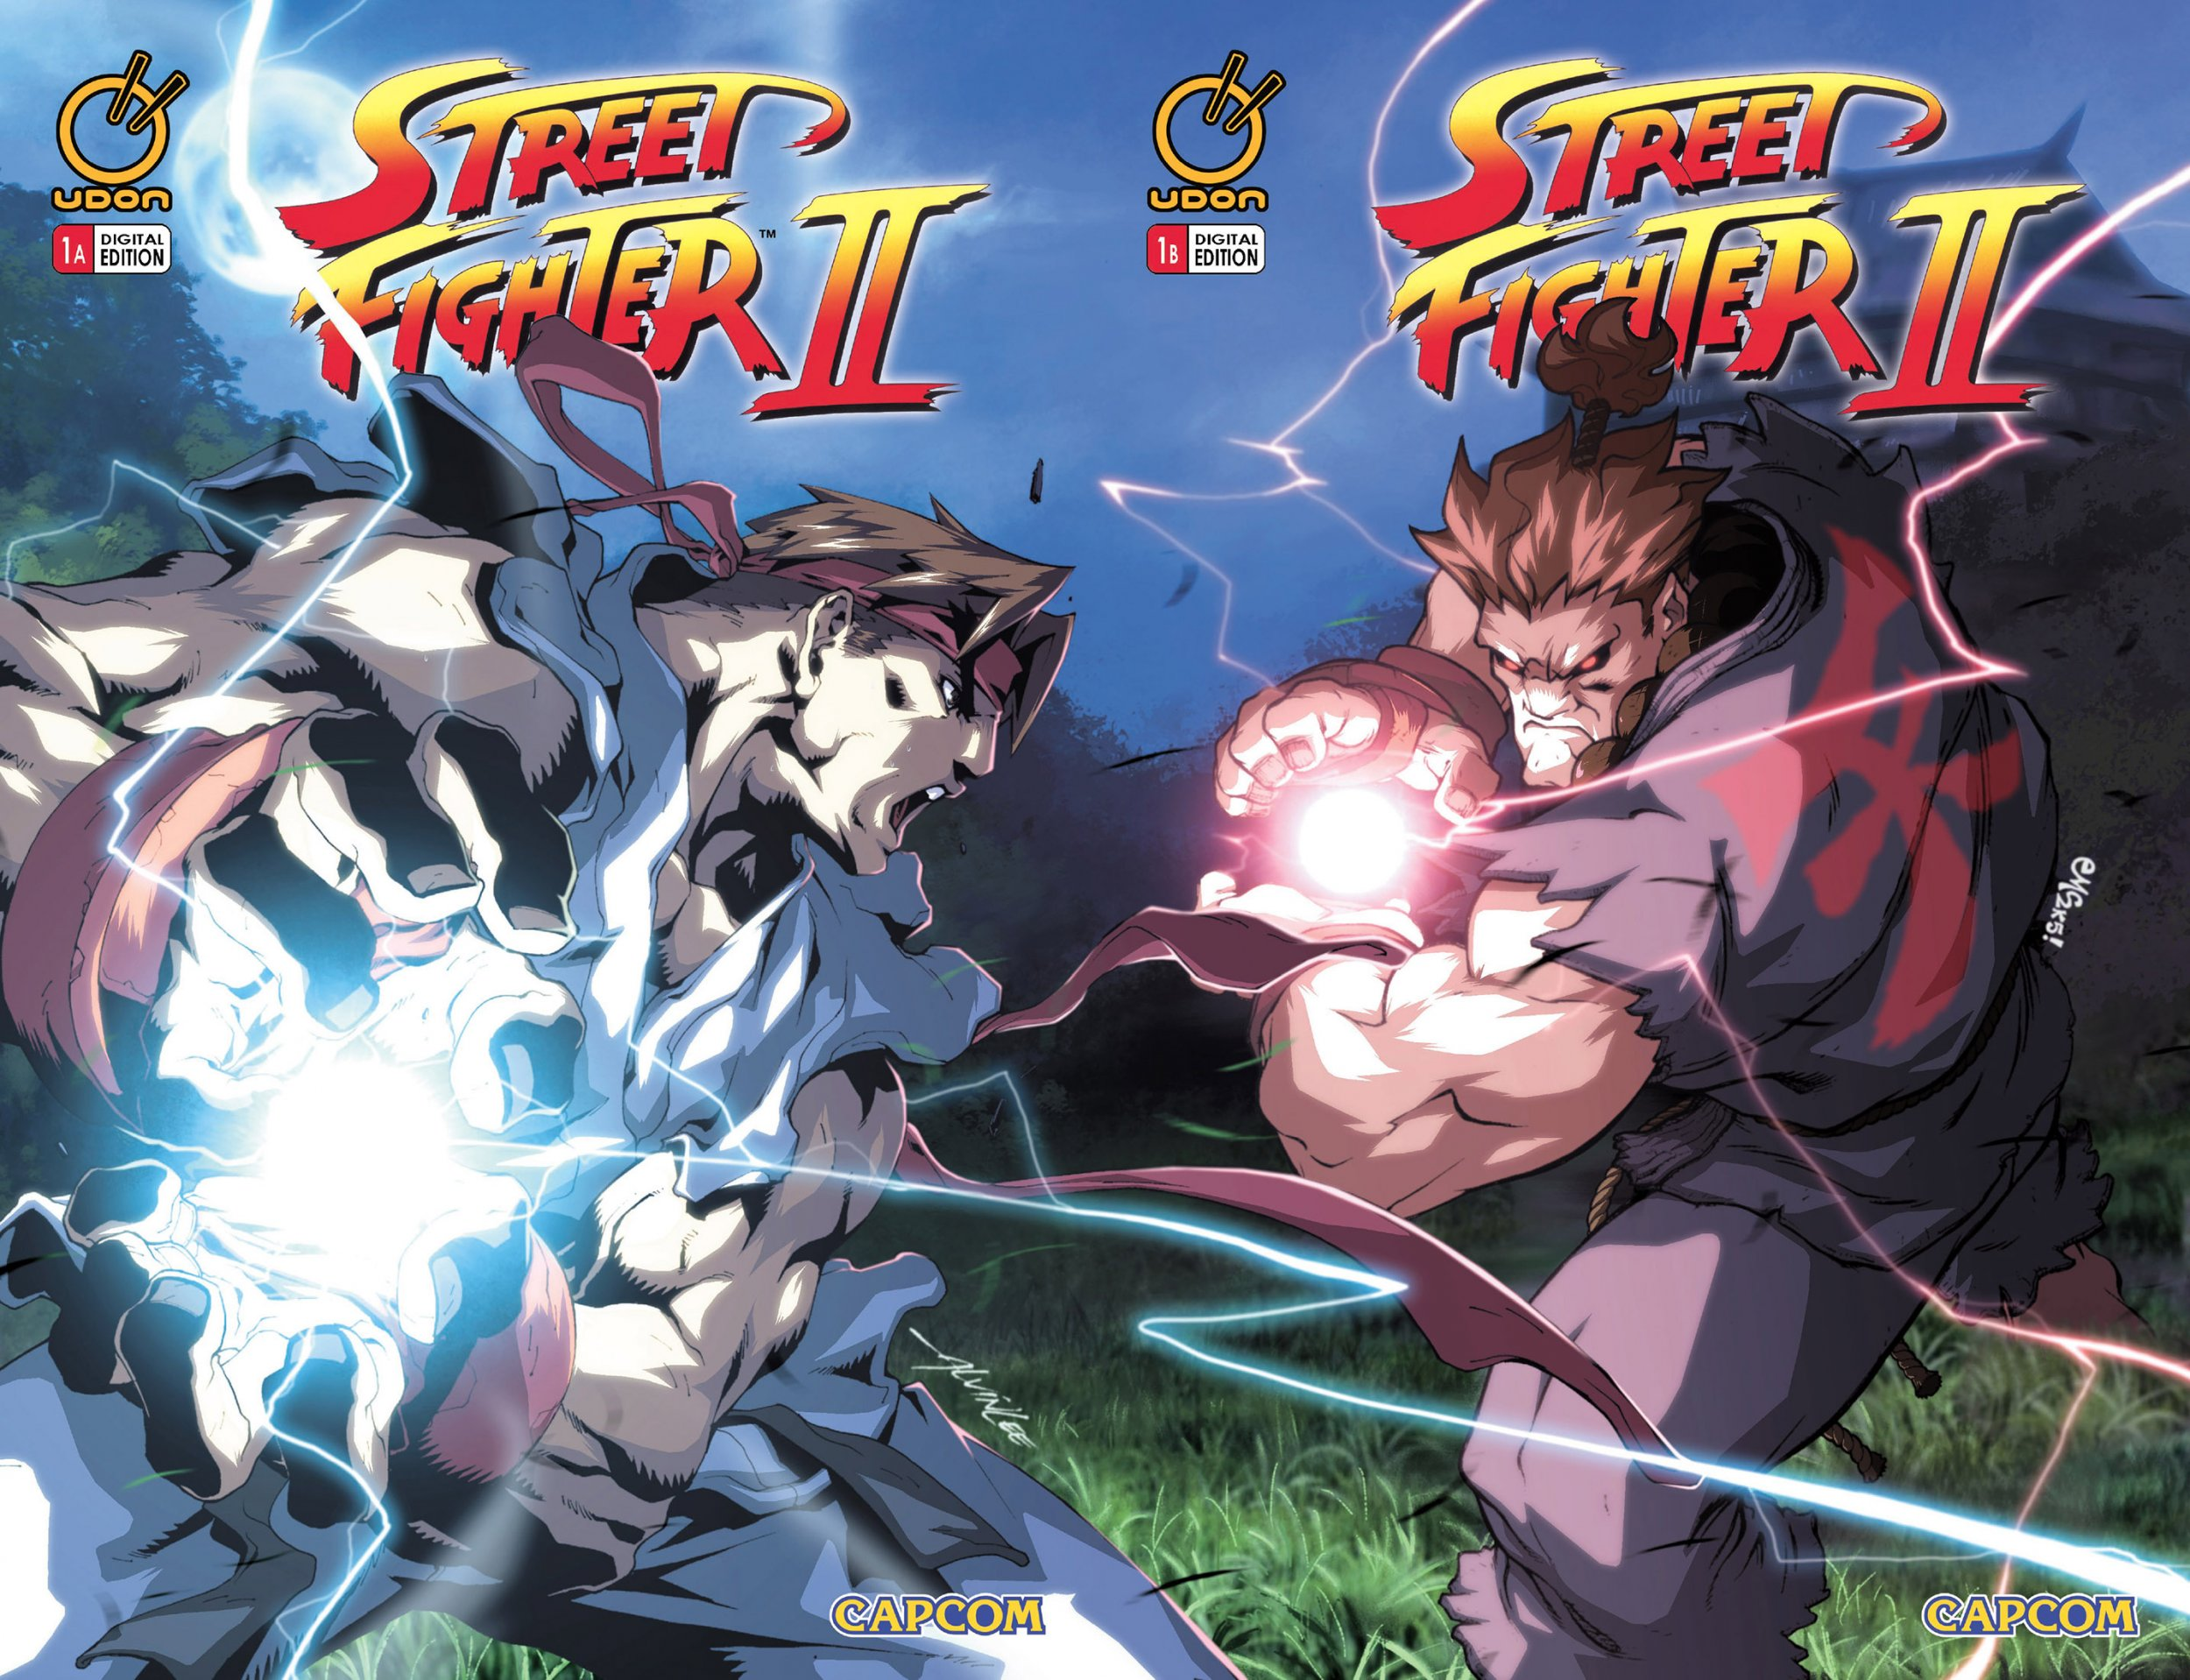 Street Fighter II Issue 1 (November 2005) (cover a&b join)